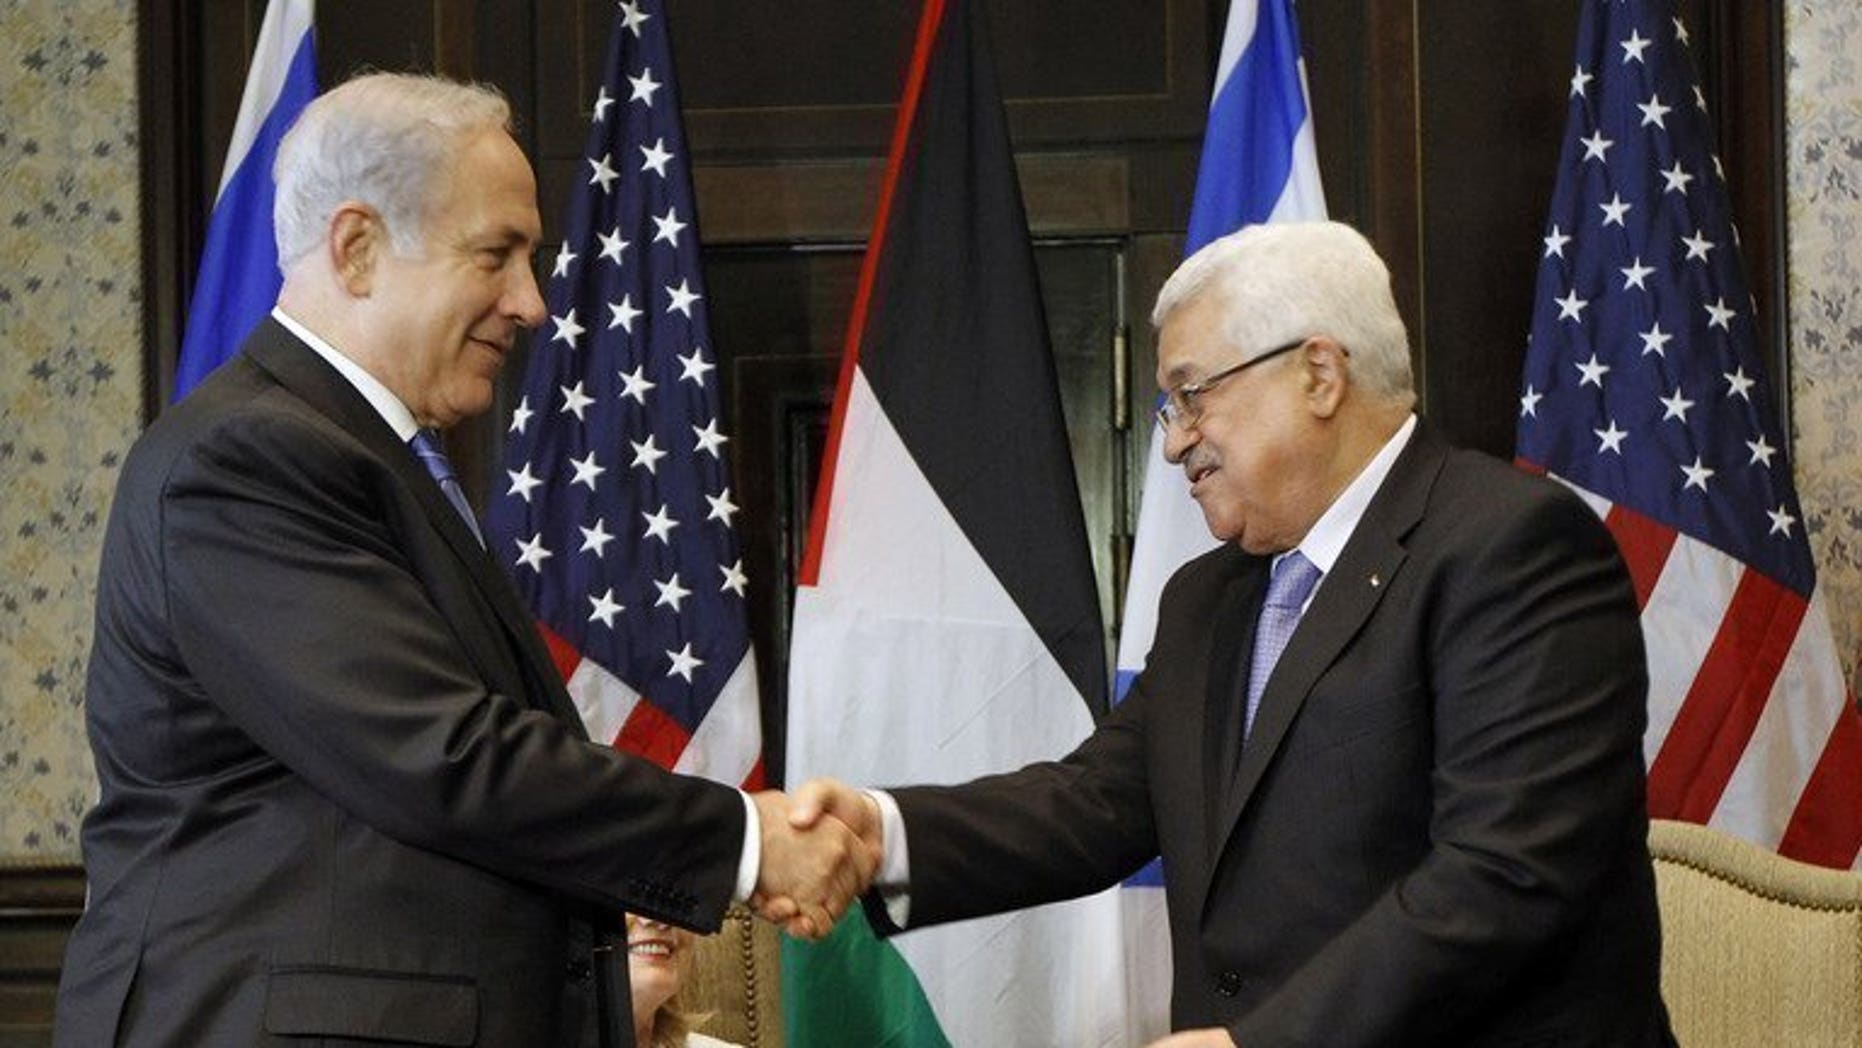 Israeli Prime Minister Benjamin Netanyahu (left) shakes hands with Palestinian president Mahmud Abbas during talks in Sharm El-Sheikh, on September 14, 2010. Iran has voiced opposition to a US-mediated resumption of peace talks between Israel and the Palestinians, predicting the Jewish state would never agree to withdraw from occupied Arab lands.